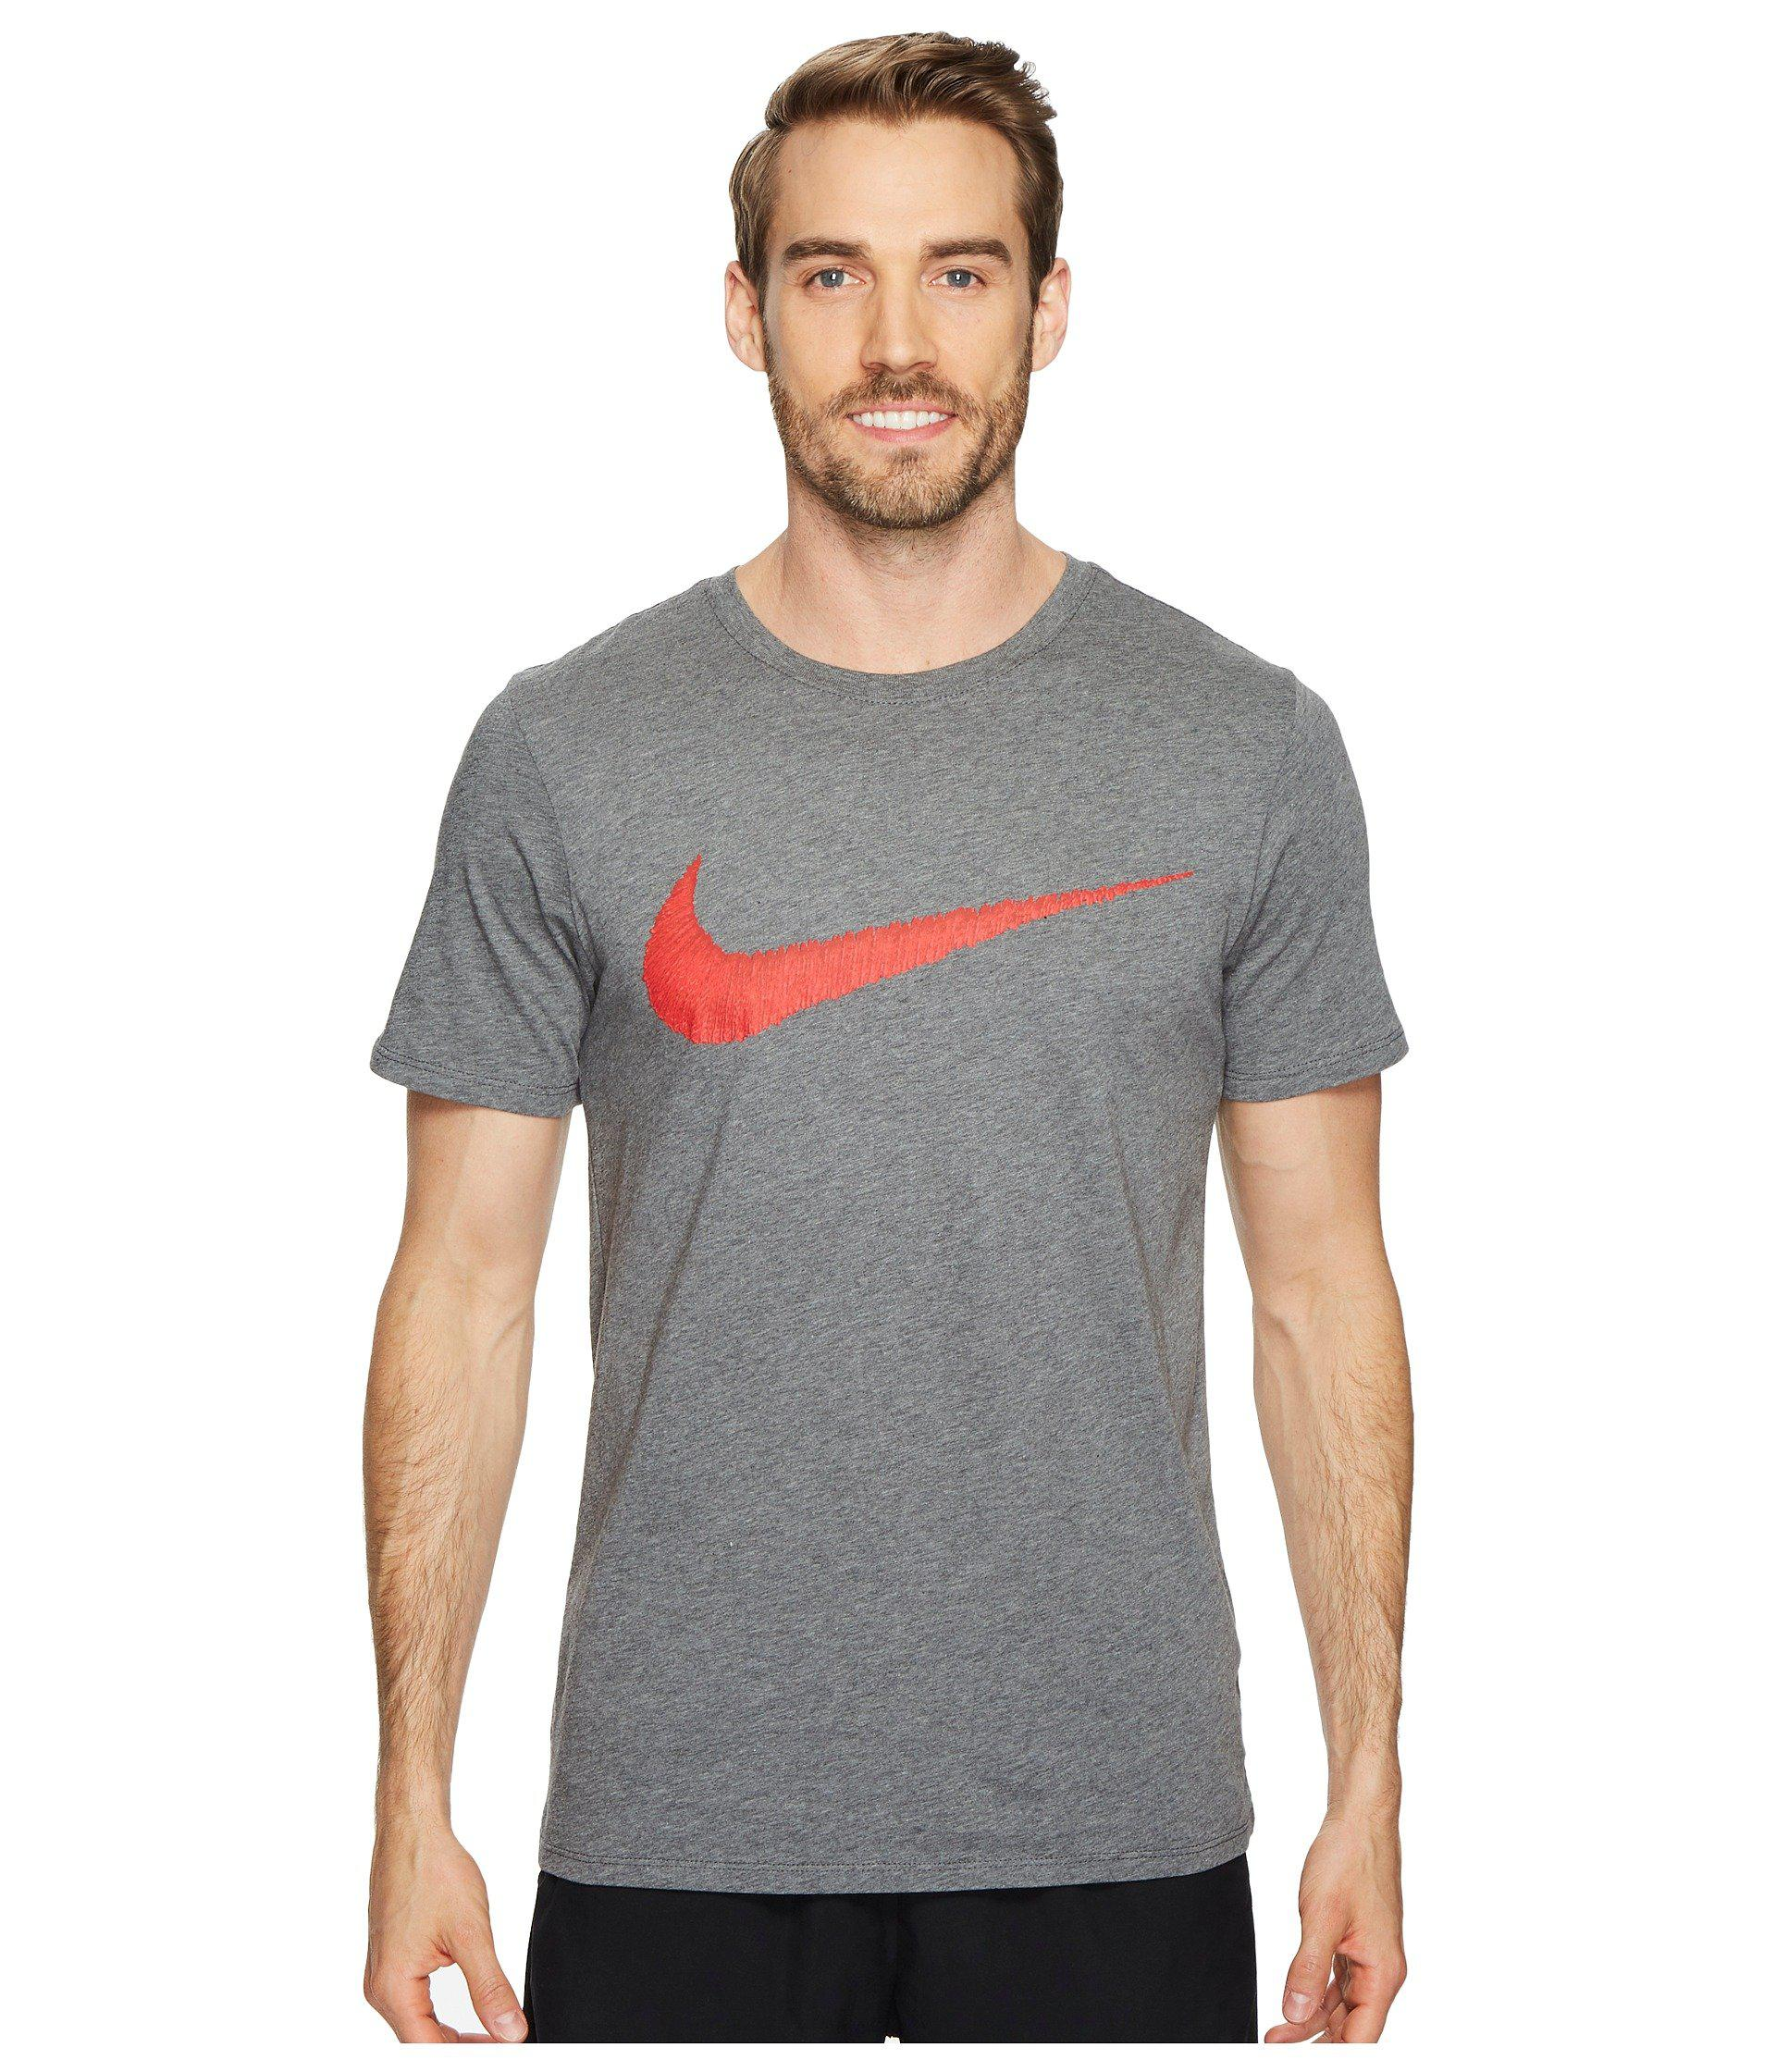 07755632f911 Lyst - Nike Hangtag Swoosh Tee (charcoal Heather university Red ...